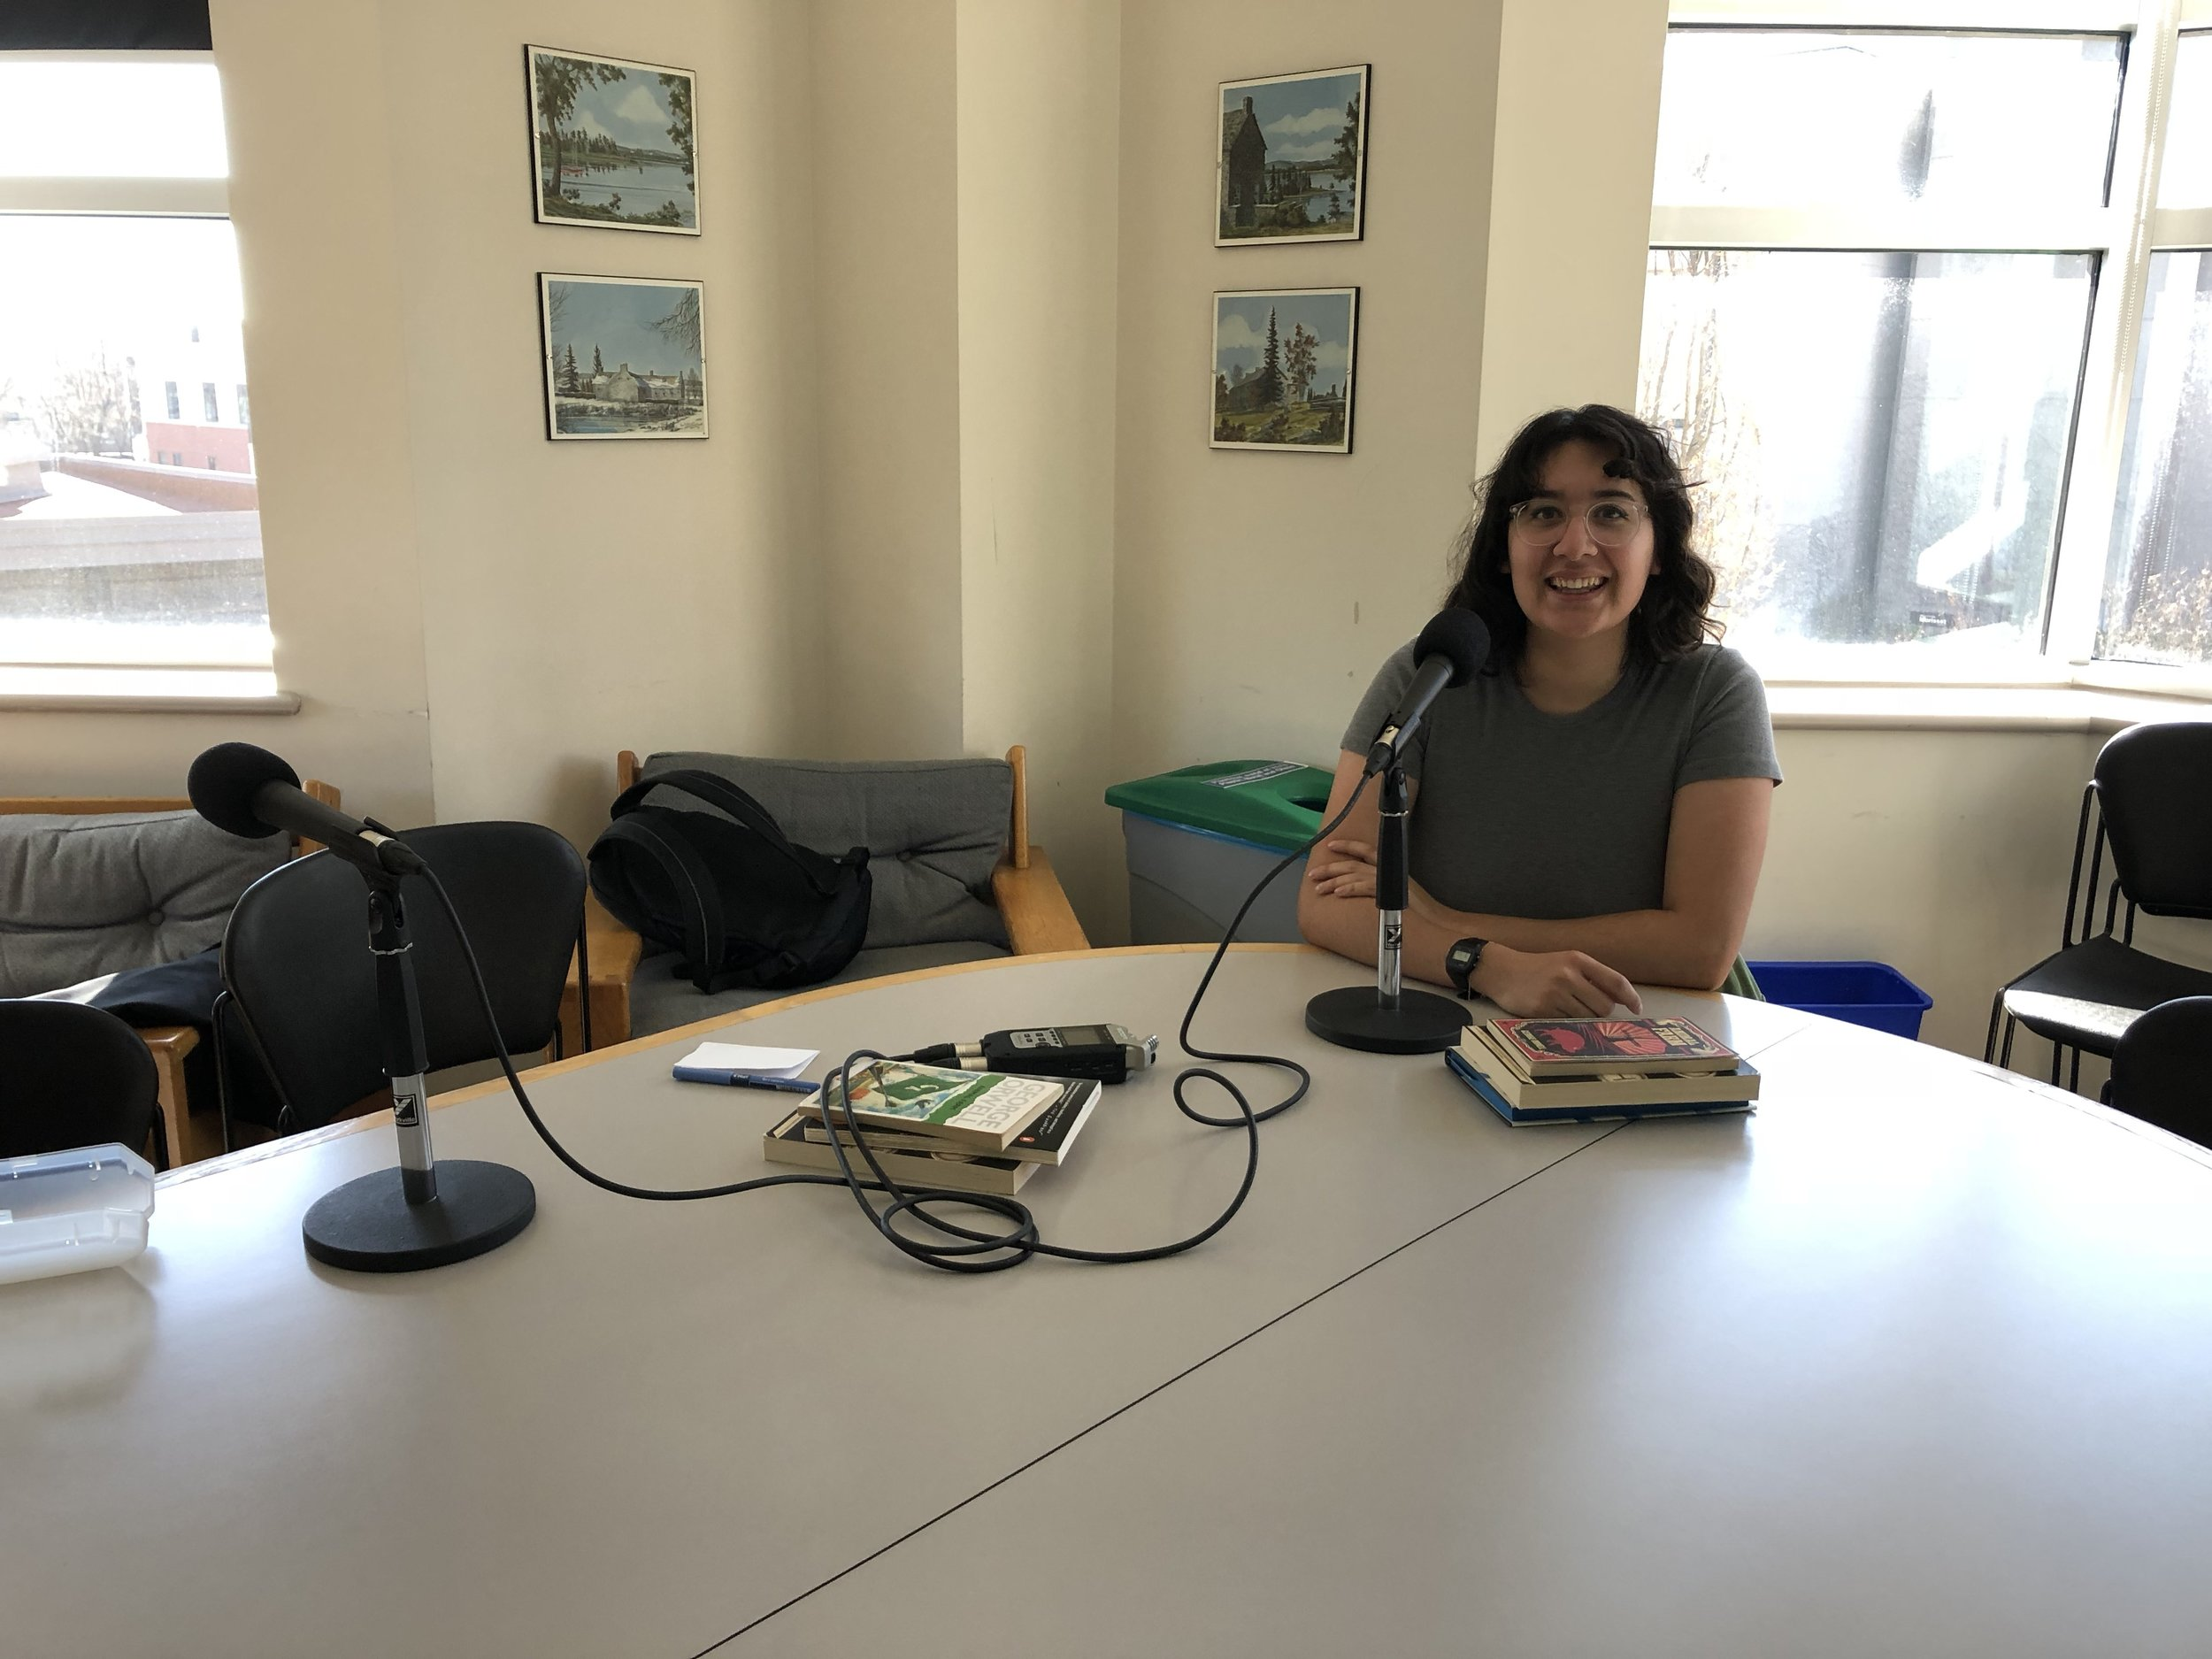 Our podcast setup in the English department.